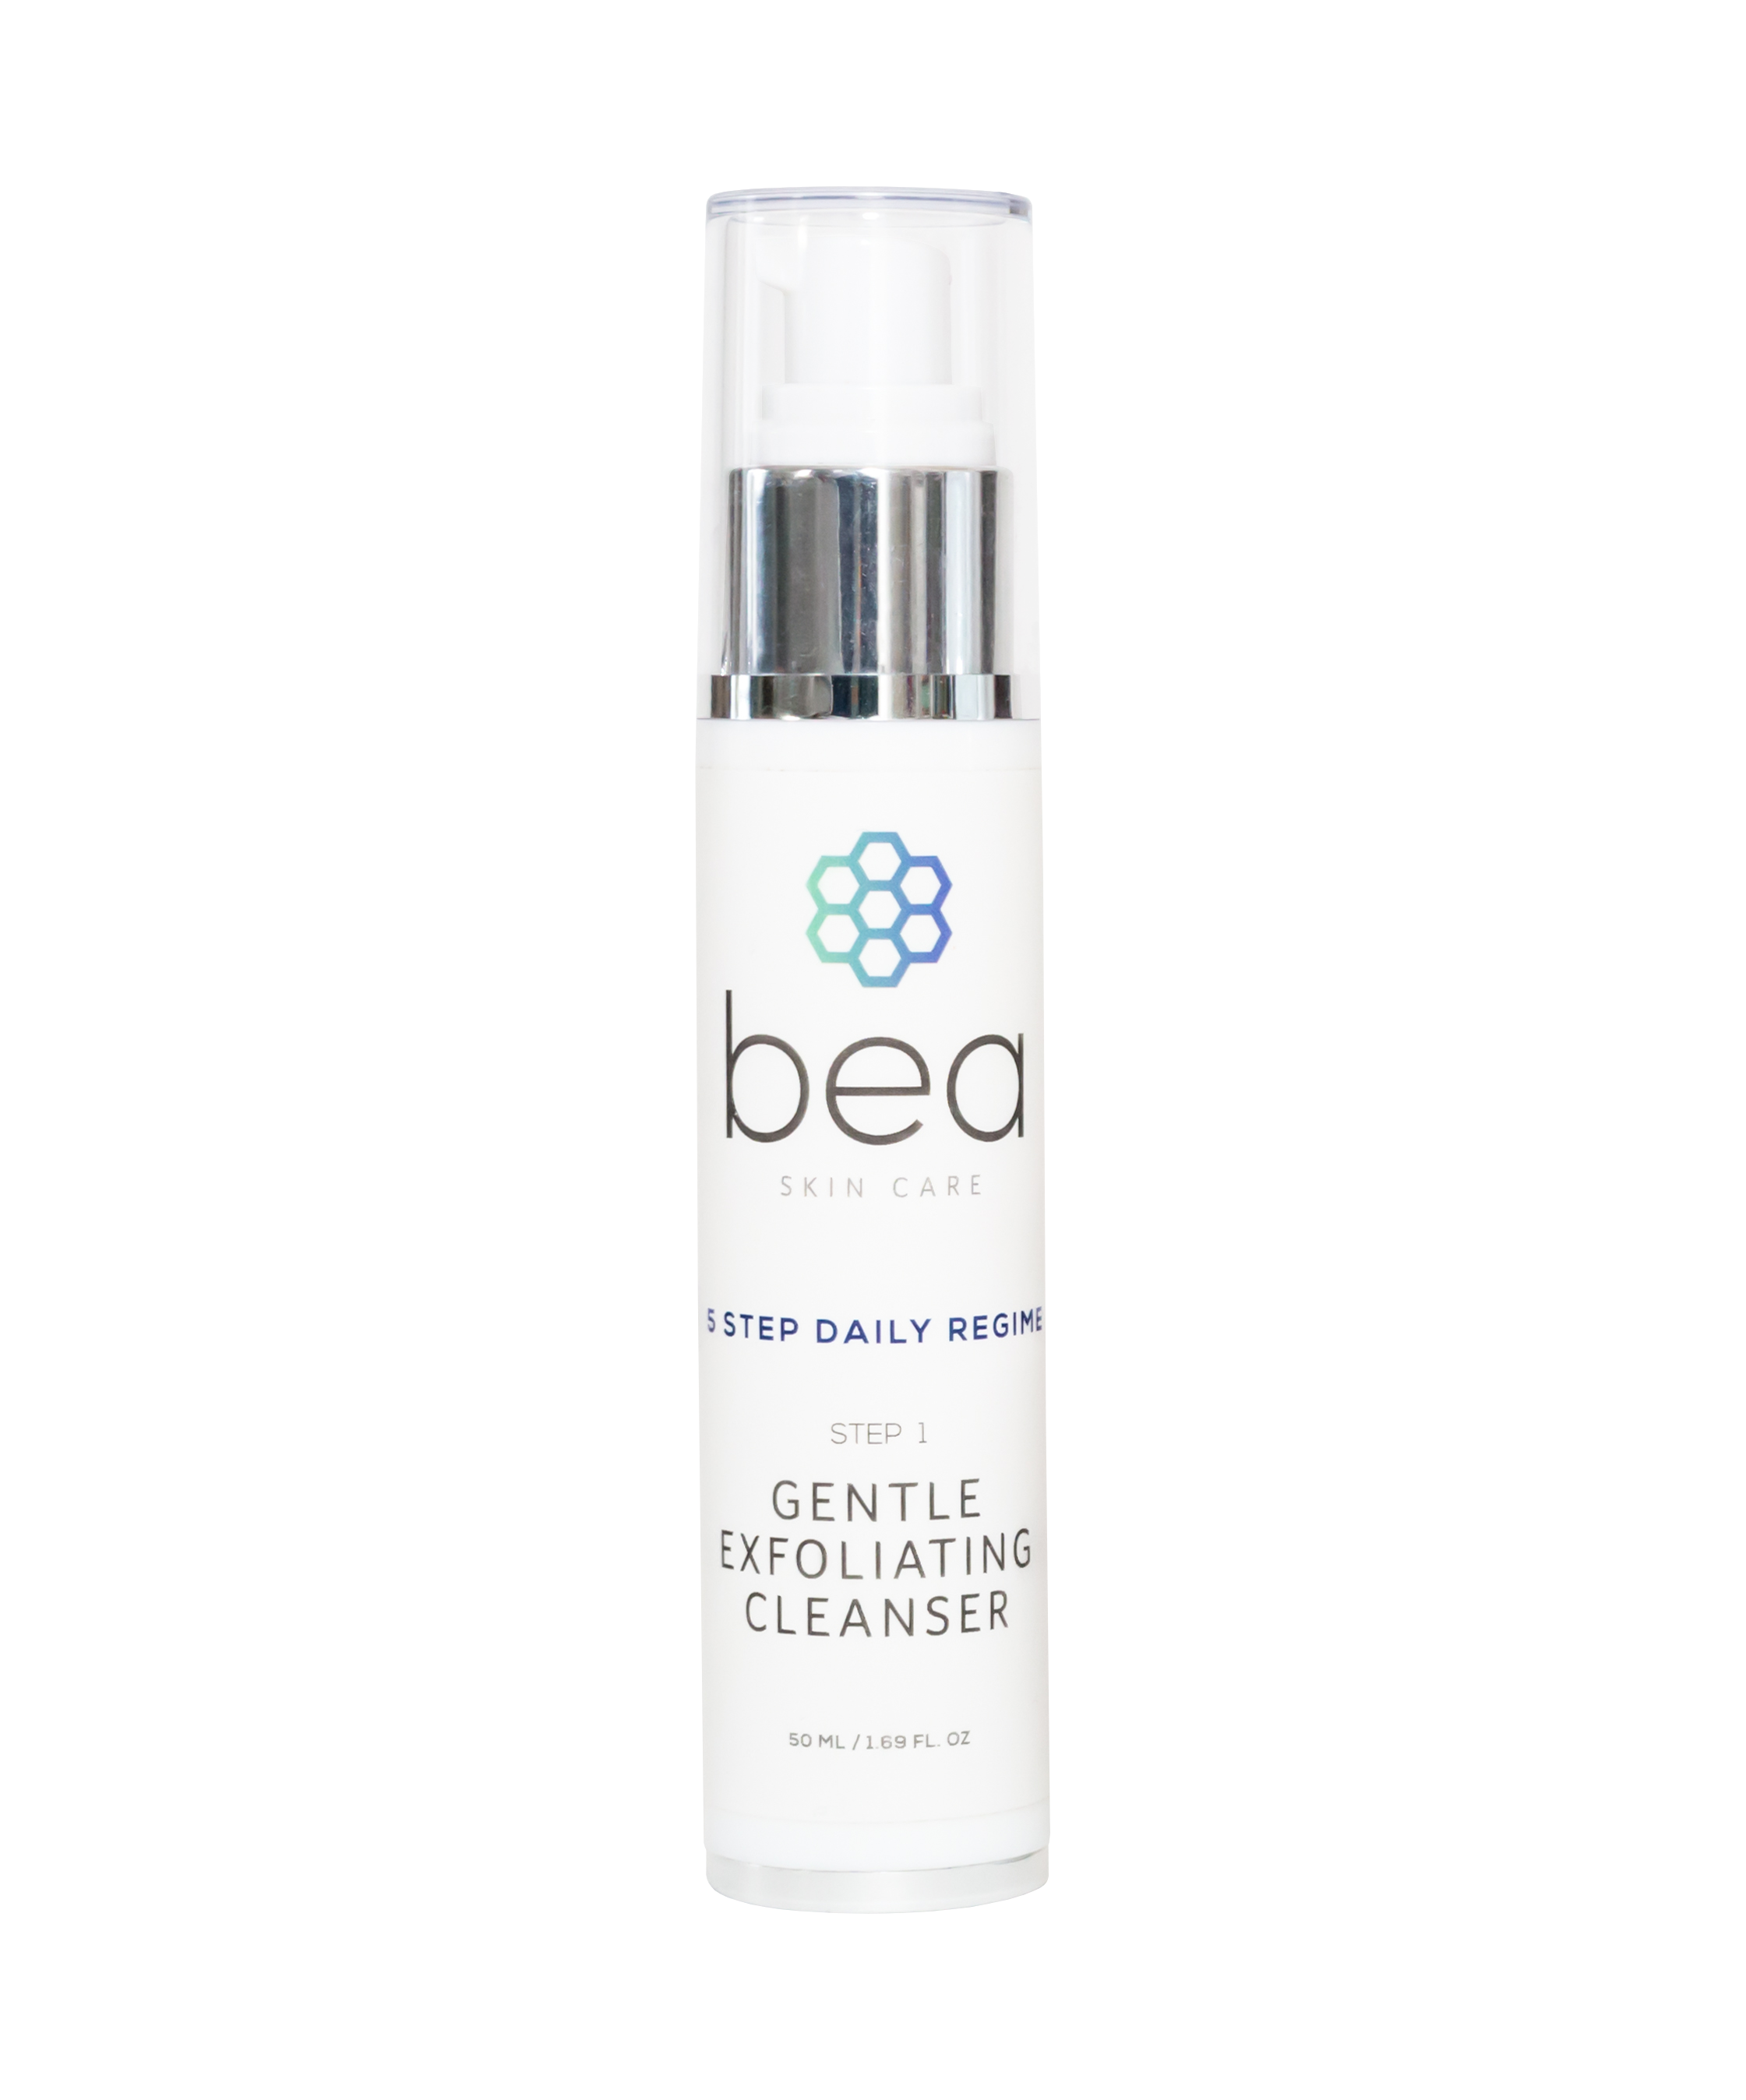 bea - Gentle Exfoliating Cleanser £32